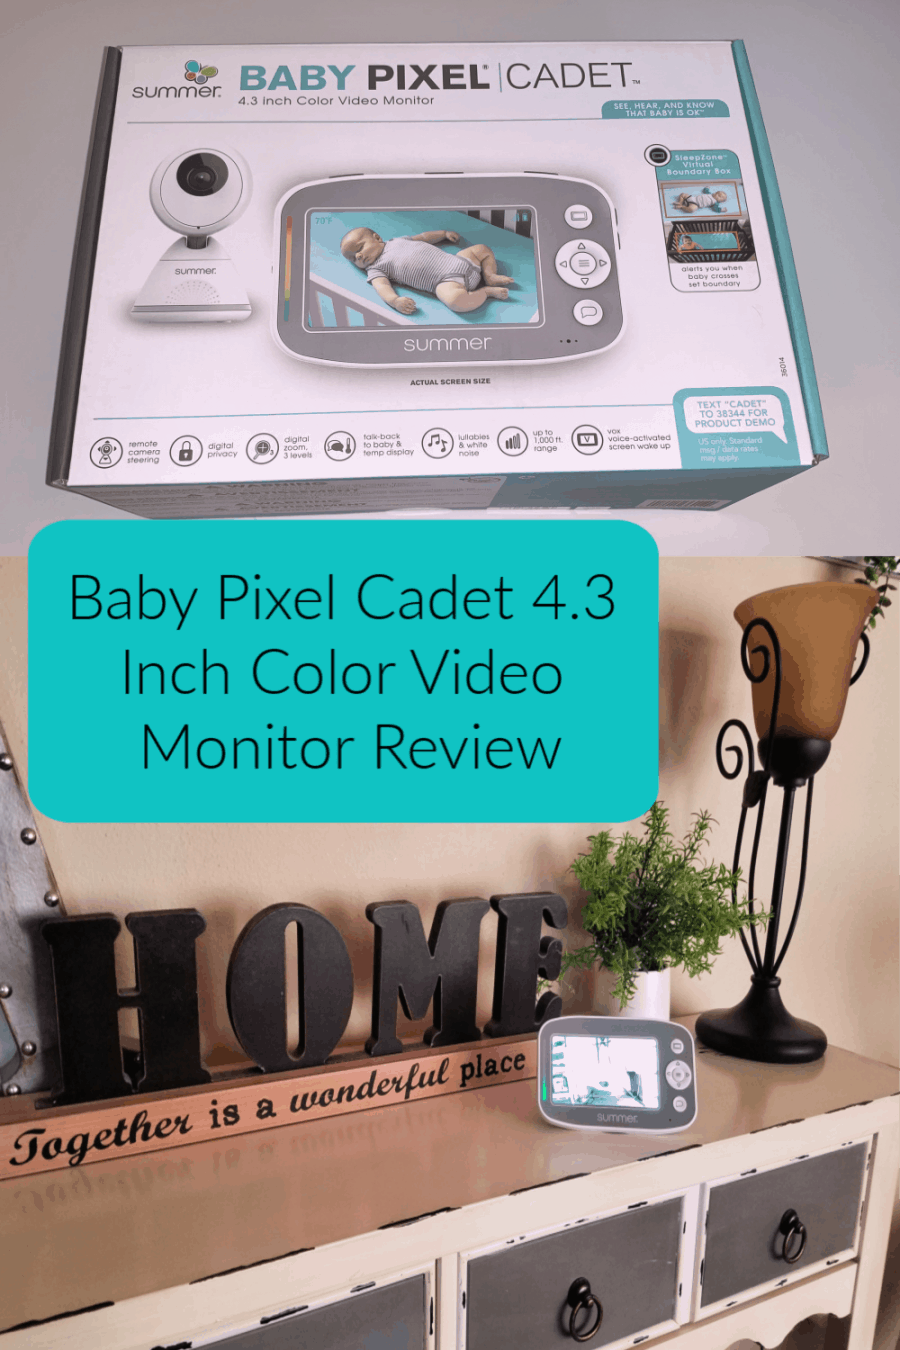 Baby Pixel Cadet 4.3 Inch Color Video Monitor Review